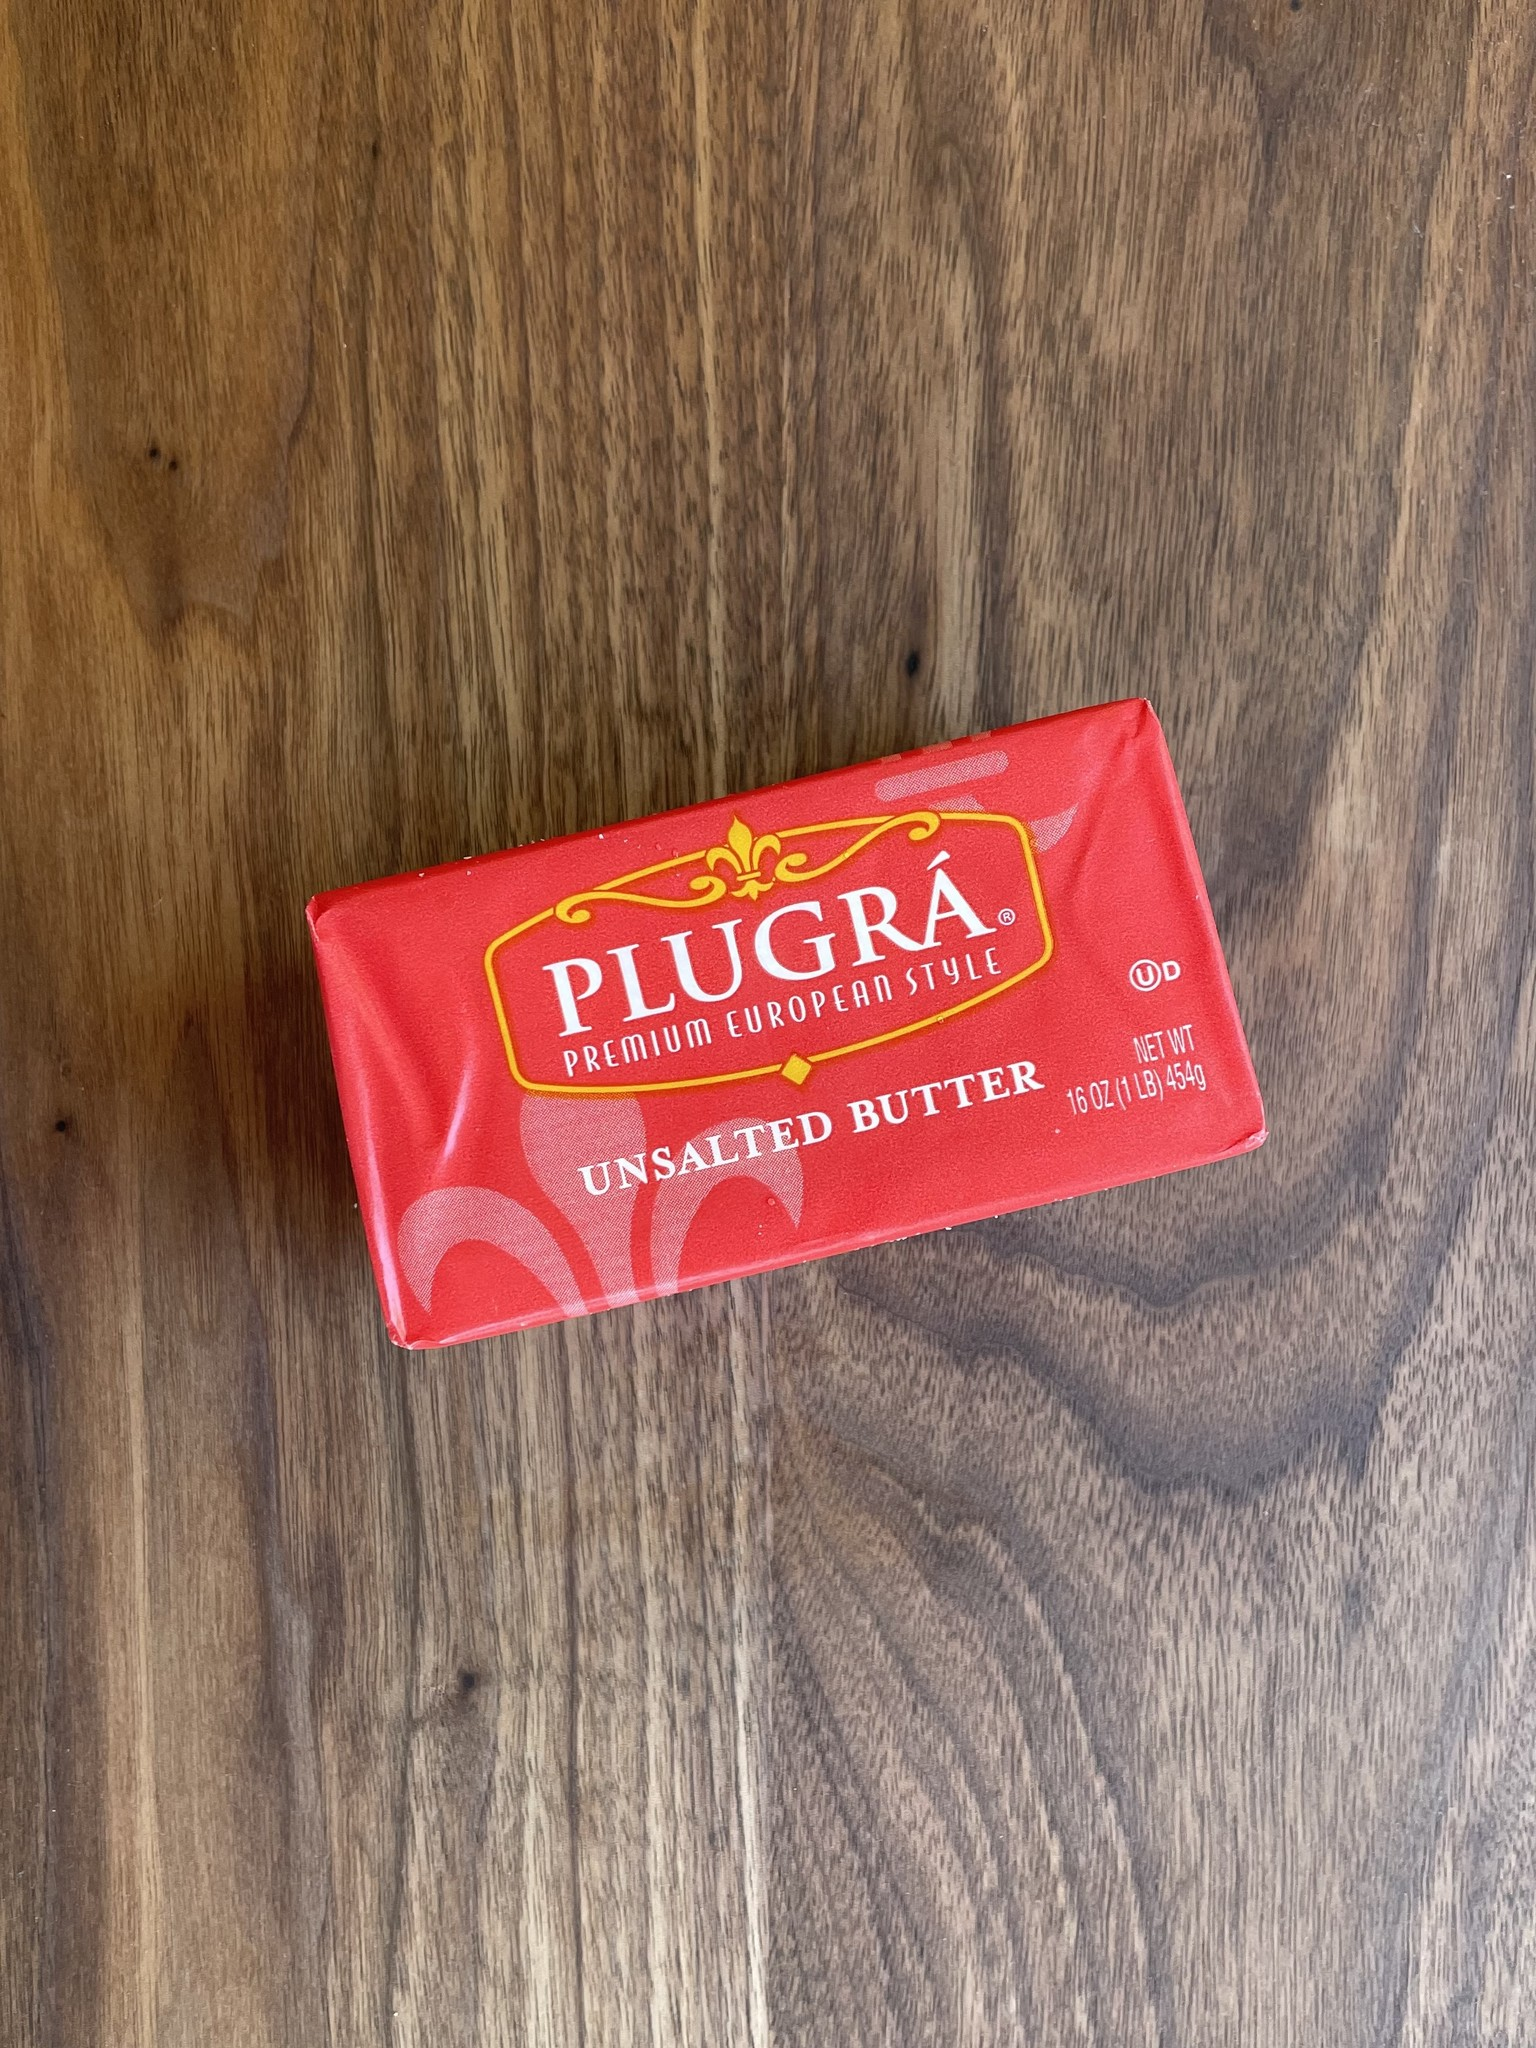 Plugra Cultured Unsalted Butter, 16 oz.-1